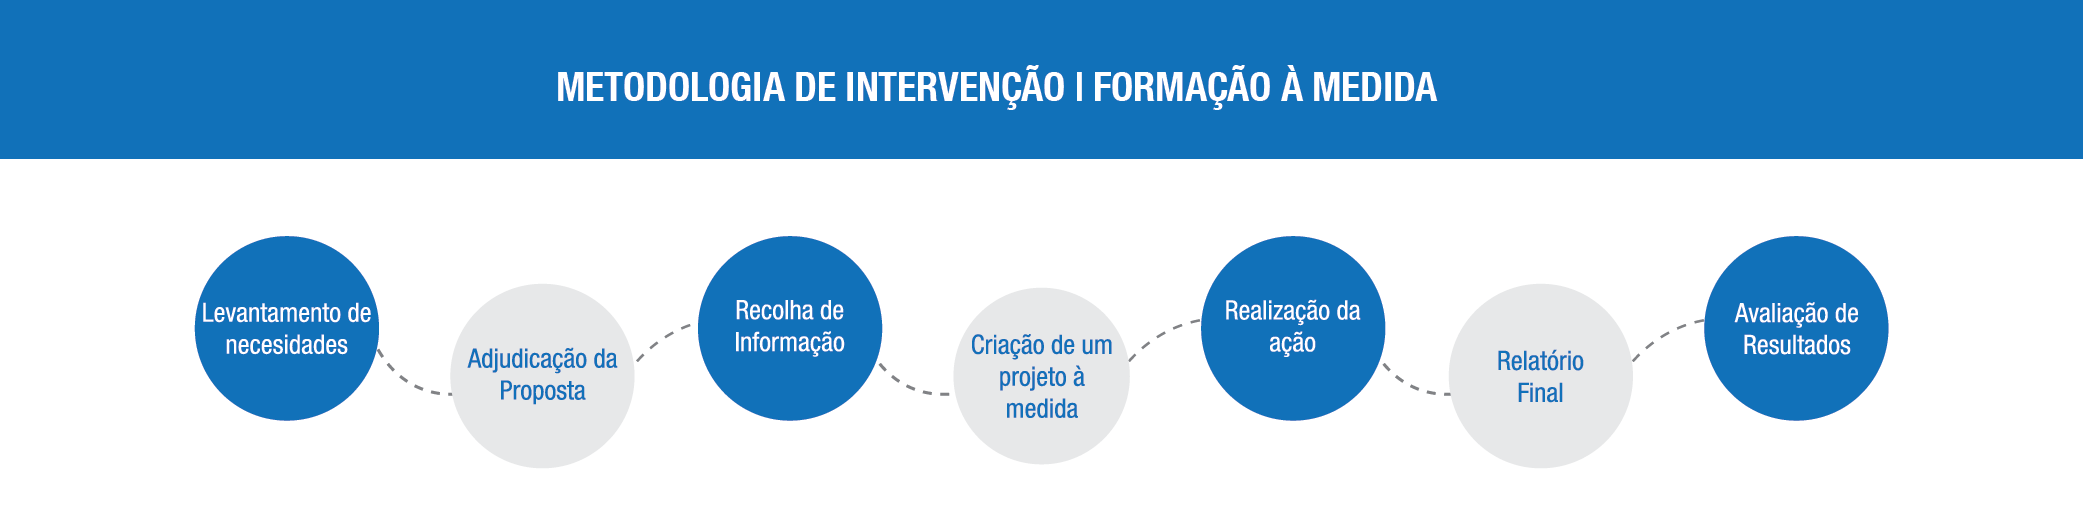 Formacao-a-medida